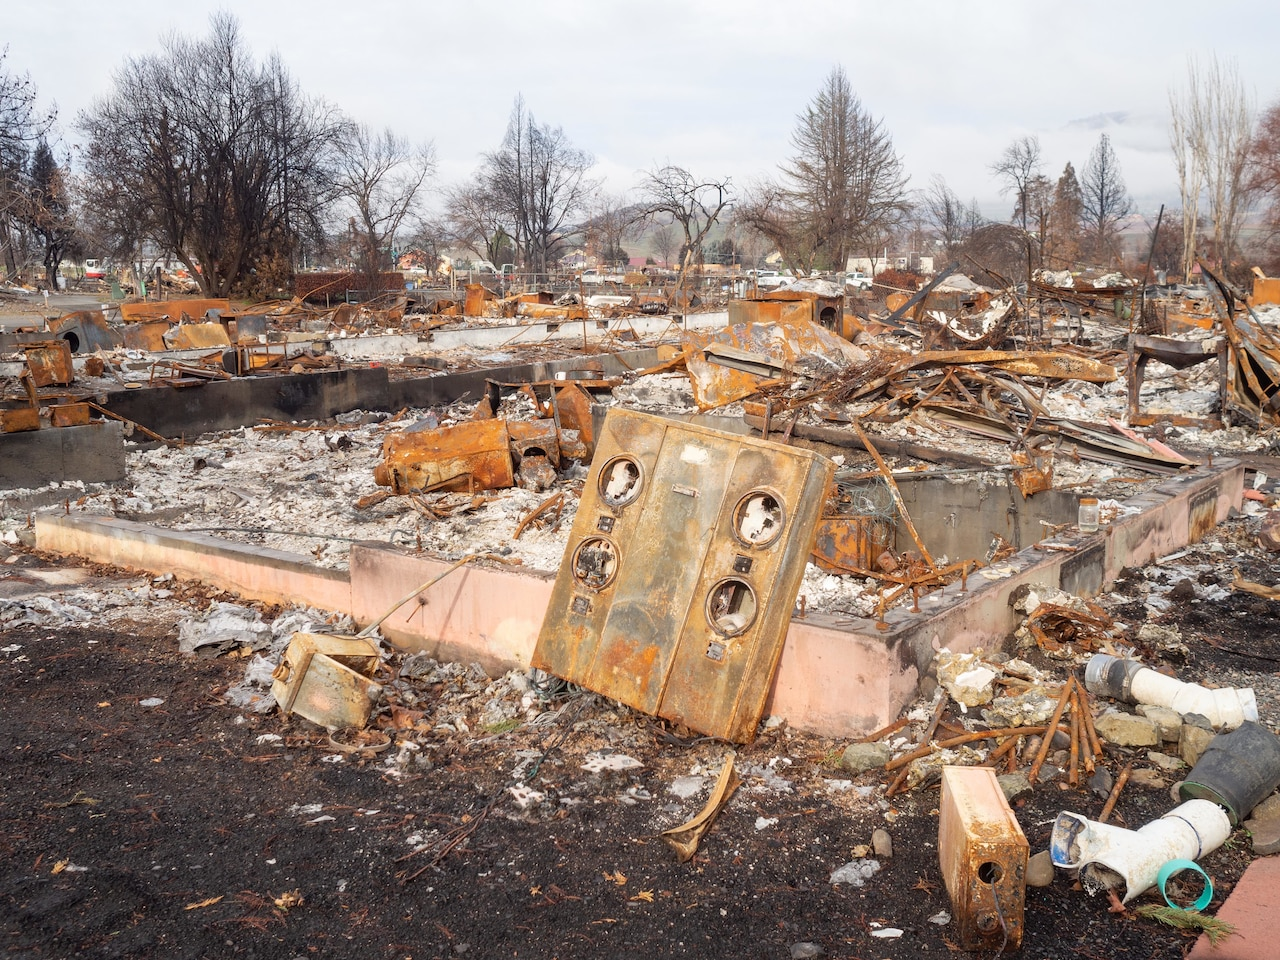 Debris and damage following a fire.